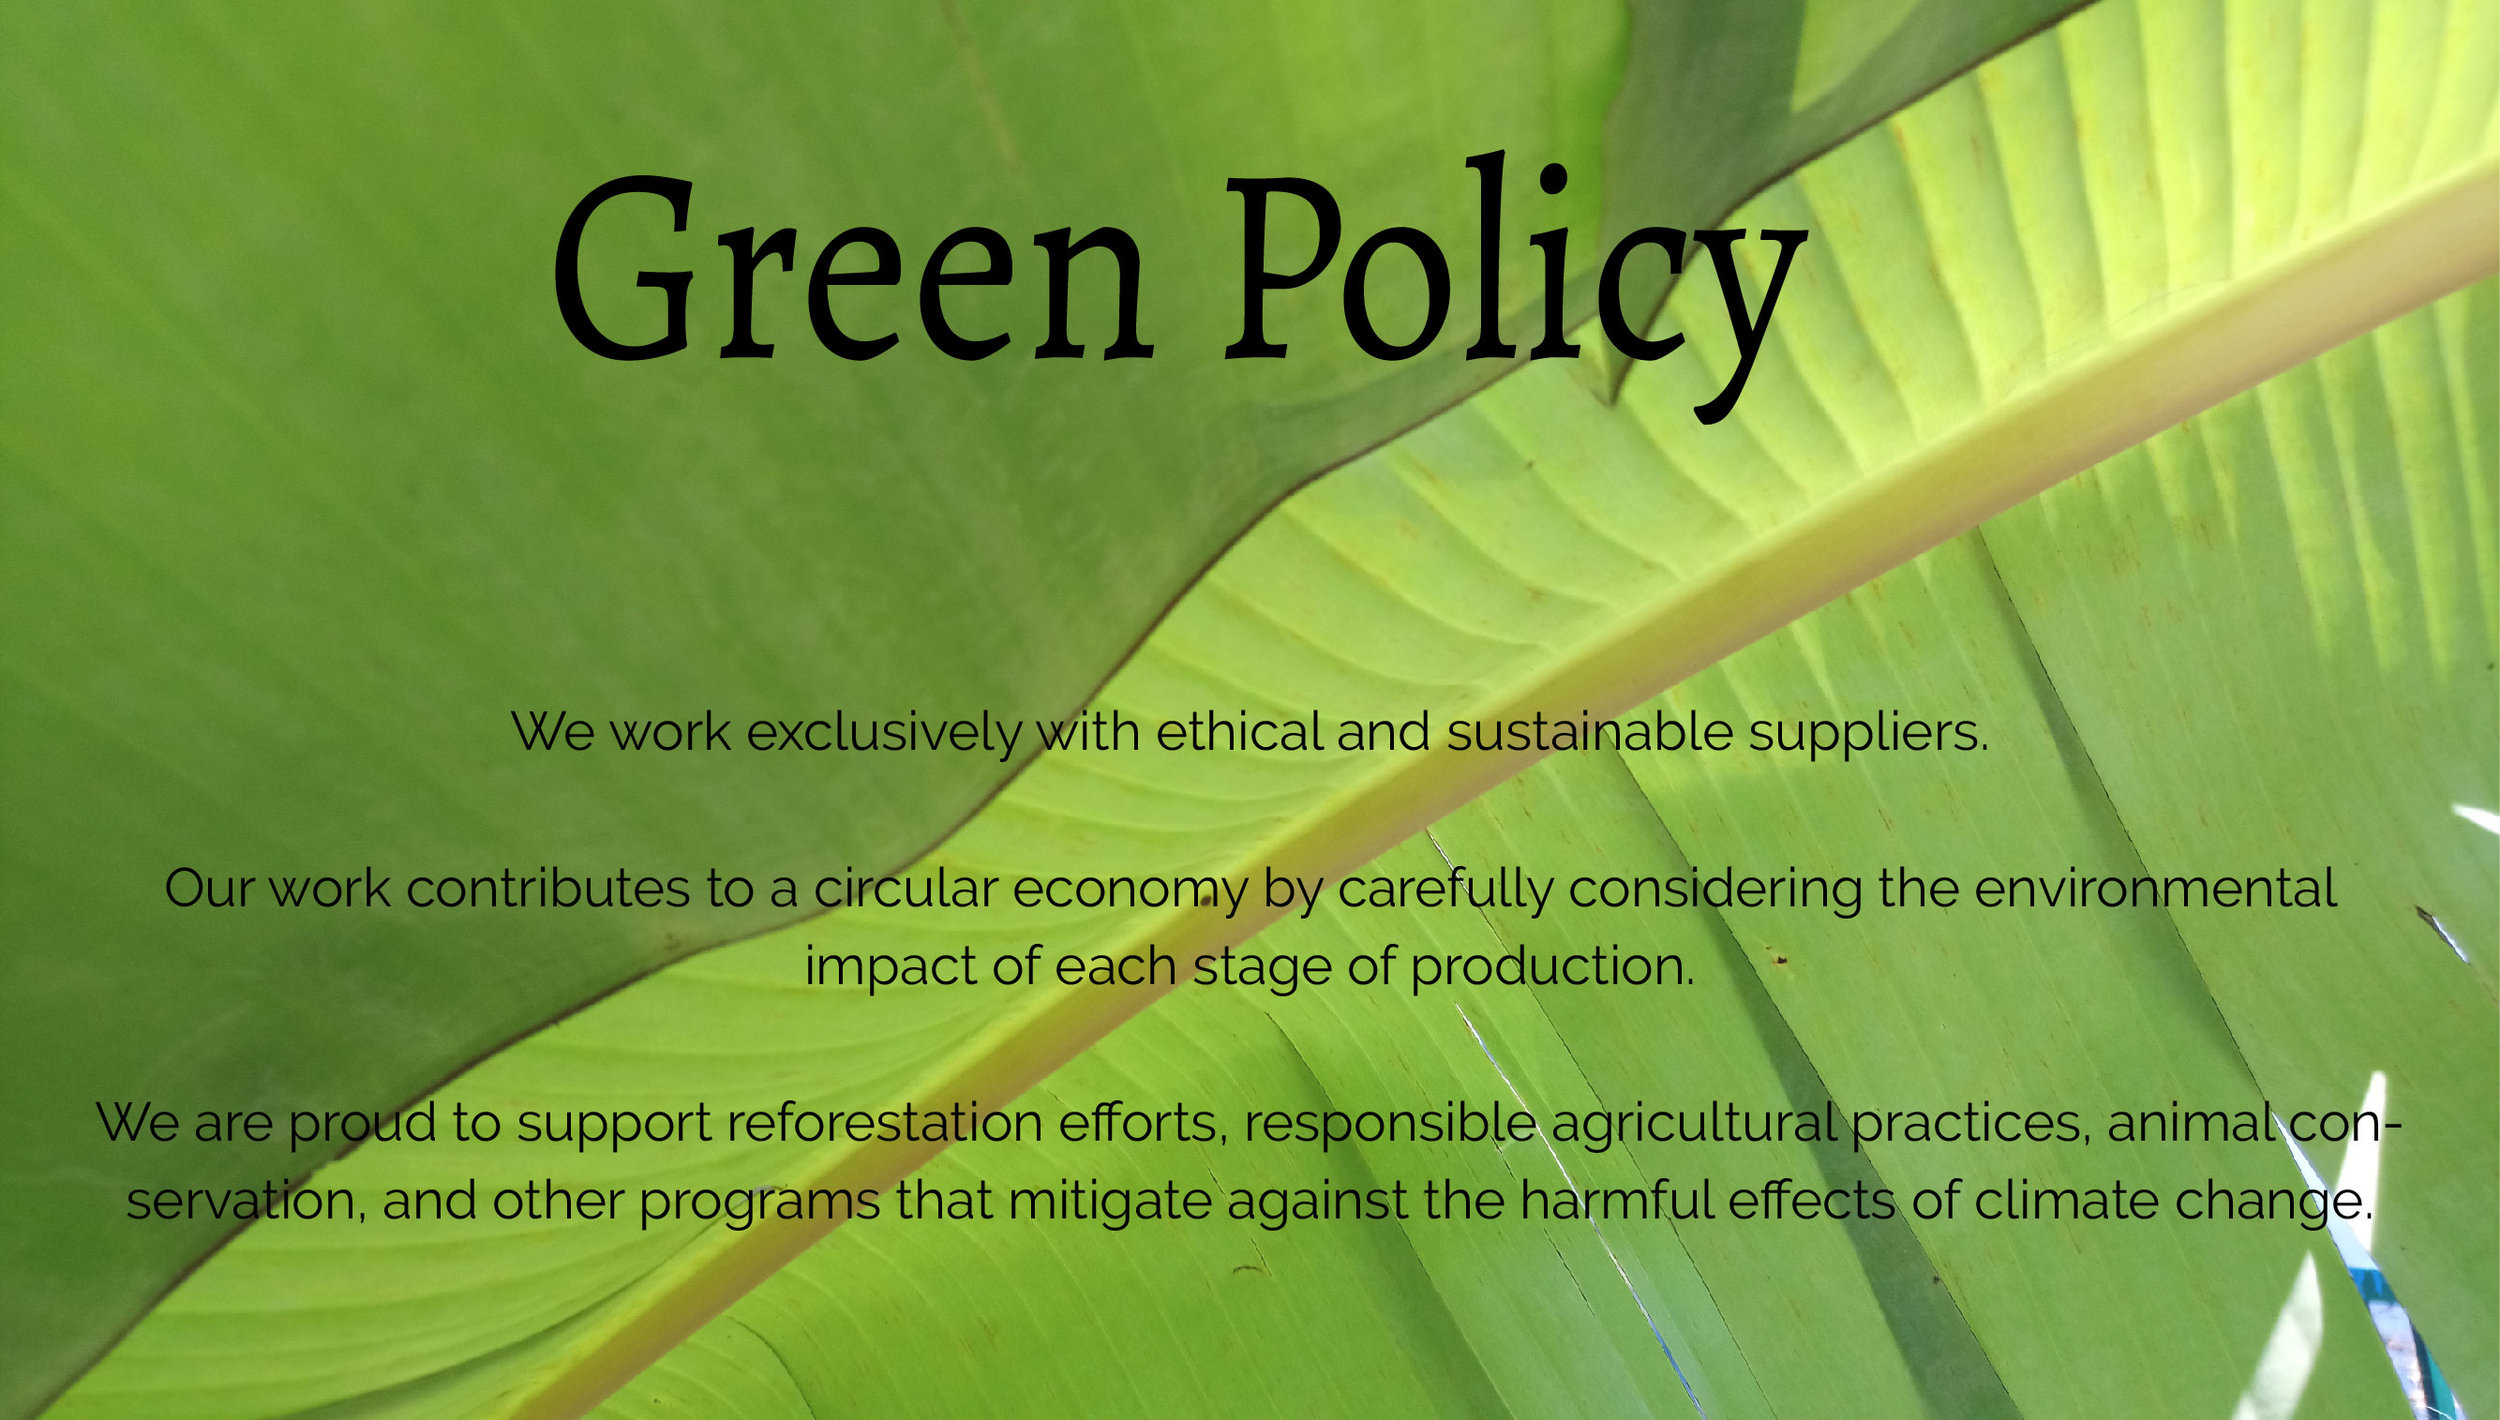 Green Policy.jpg